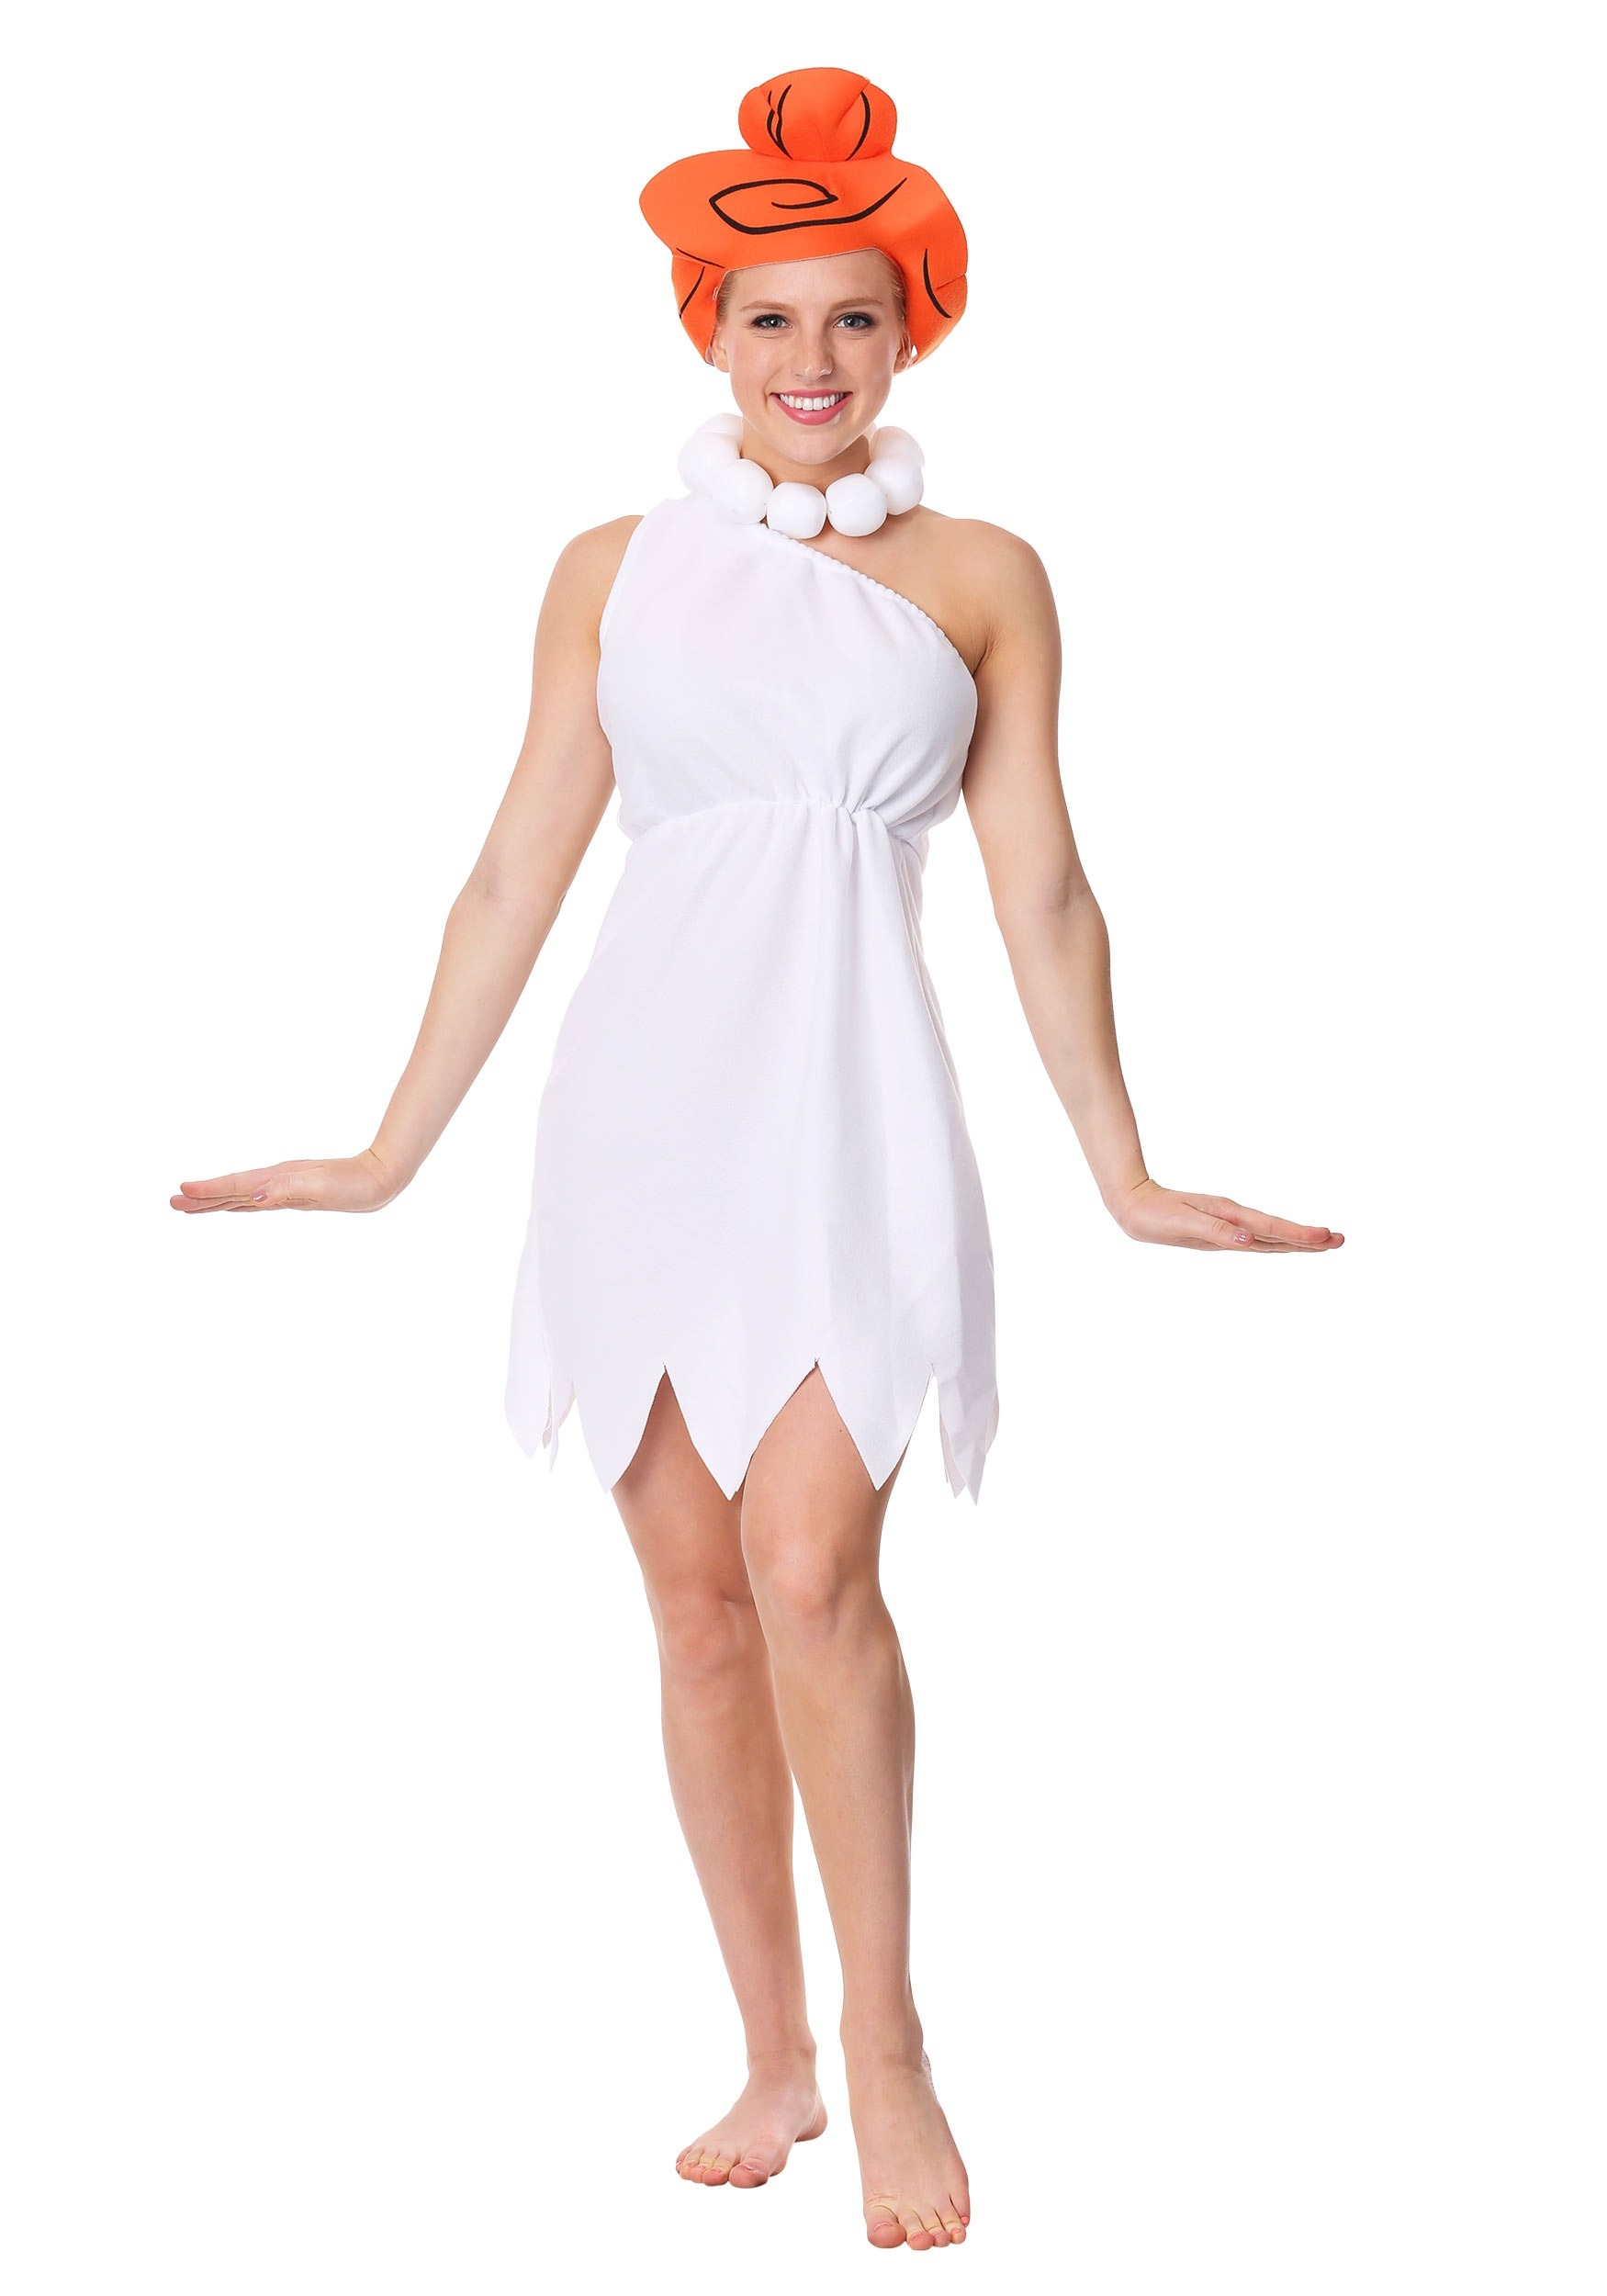 wilma flintstone adult costume - Accessories For Halloween Costumes